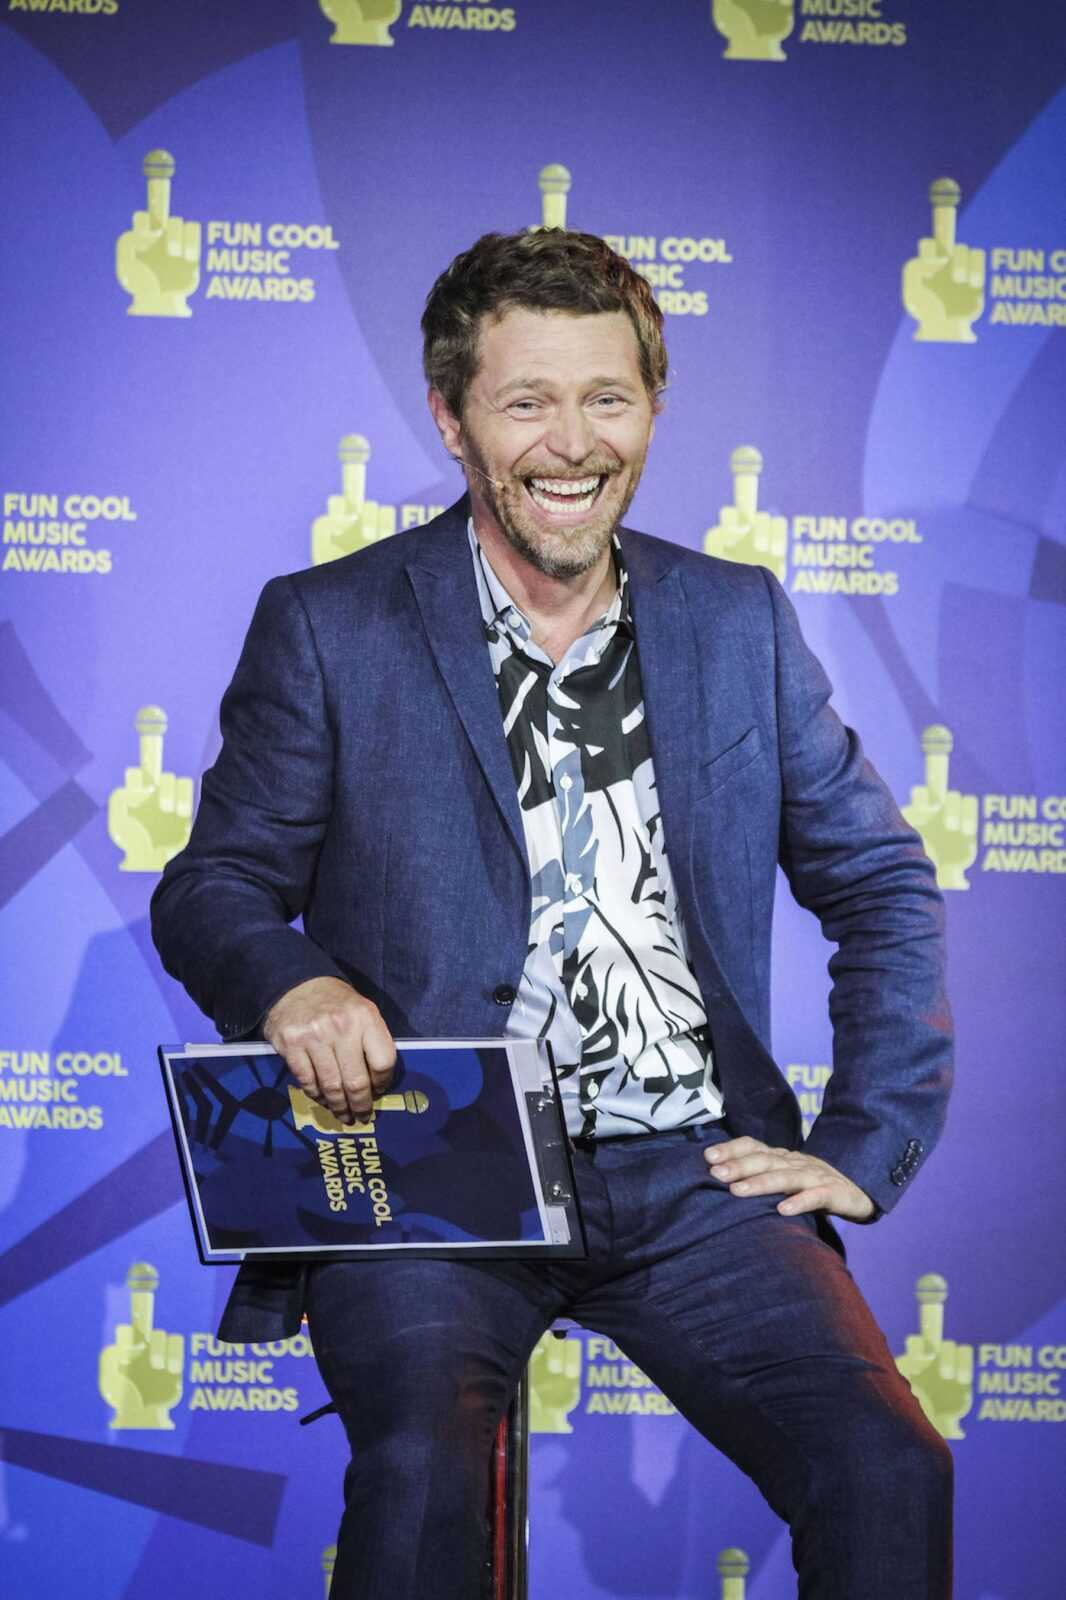 Zelig TV: Marco Maccarini conduce Fun Cool Music Awards